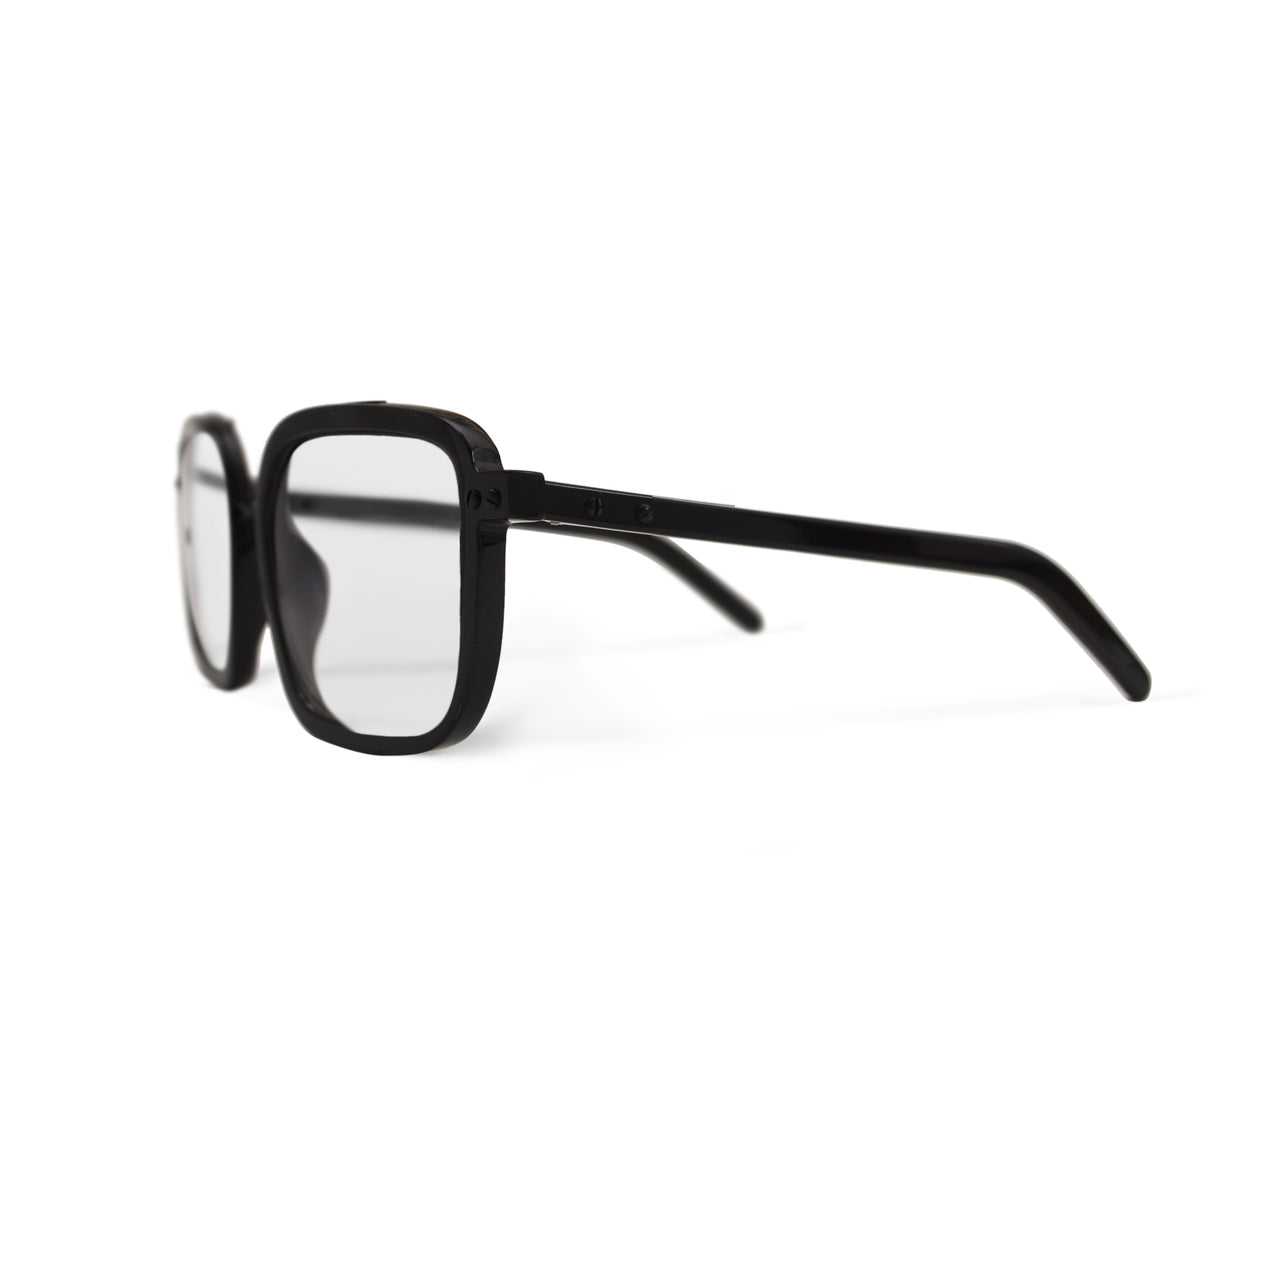 Horn. Dark. Clear Lens - BLYSZAK eyewear eyewear - eyewear, optical, sunglasses